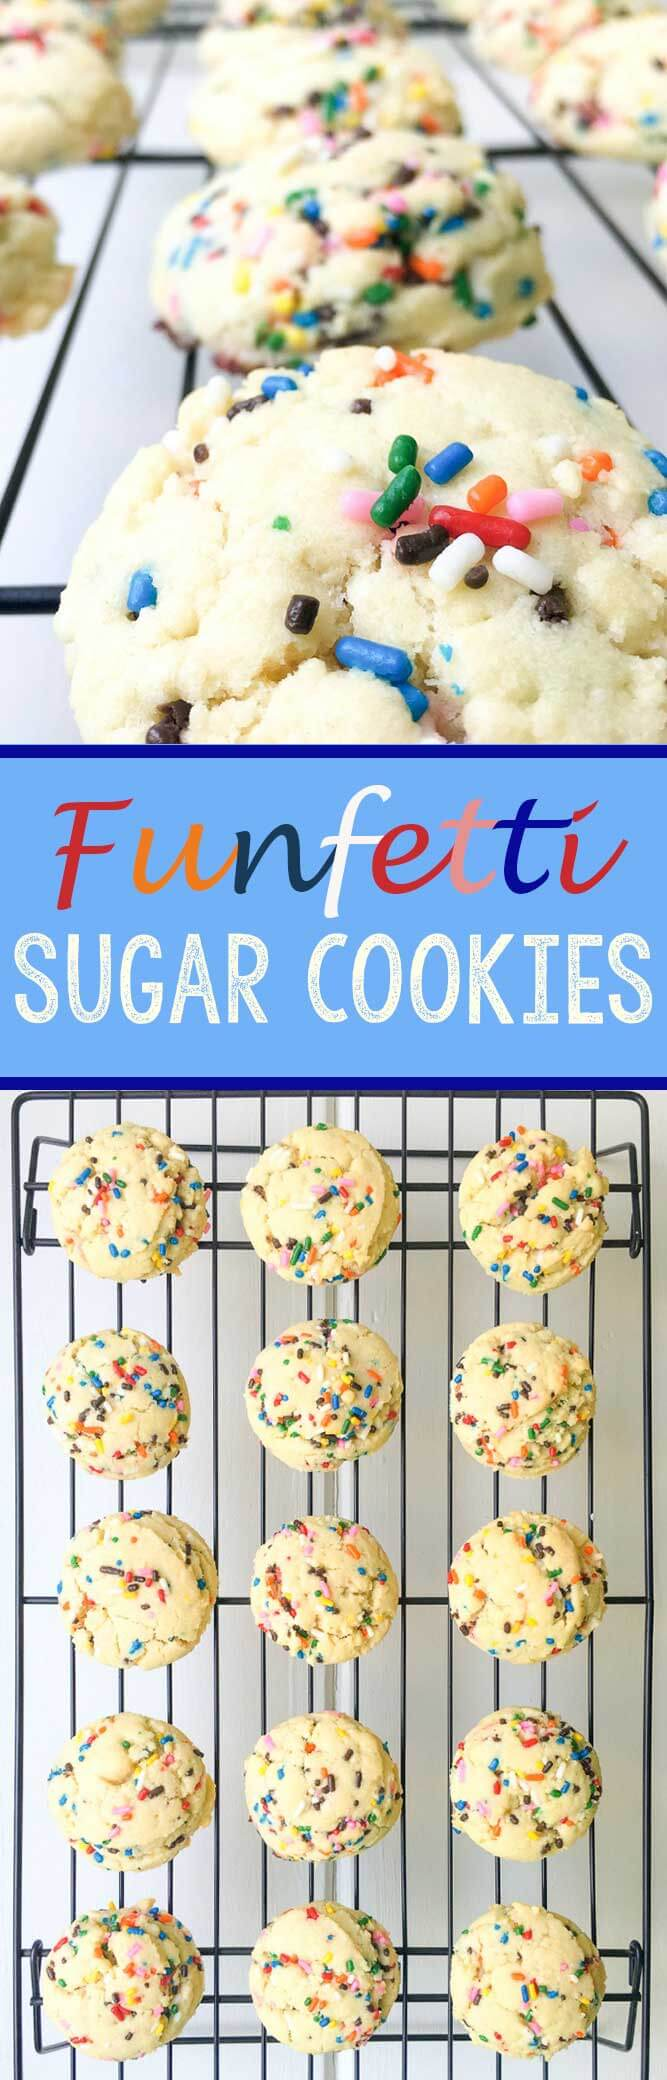 Funfetti Sugar Cookies are  quick, easy, and serious fun!